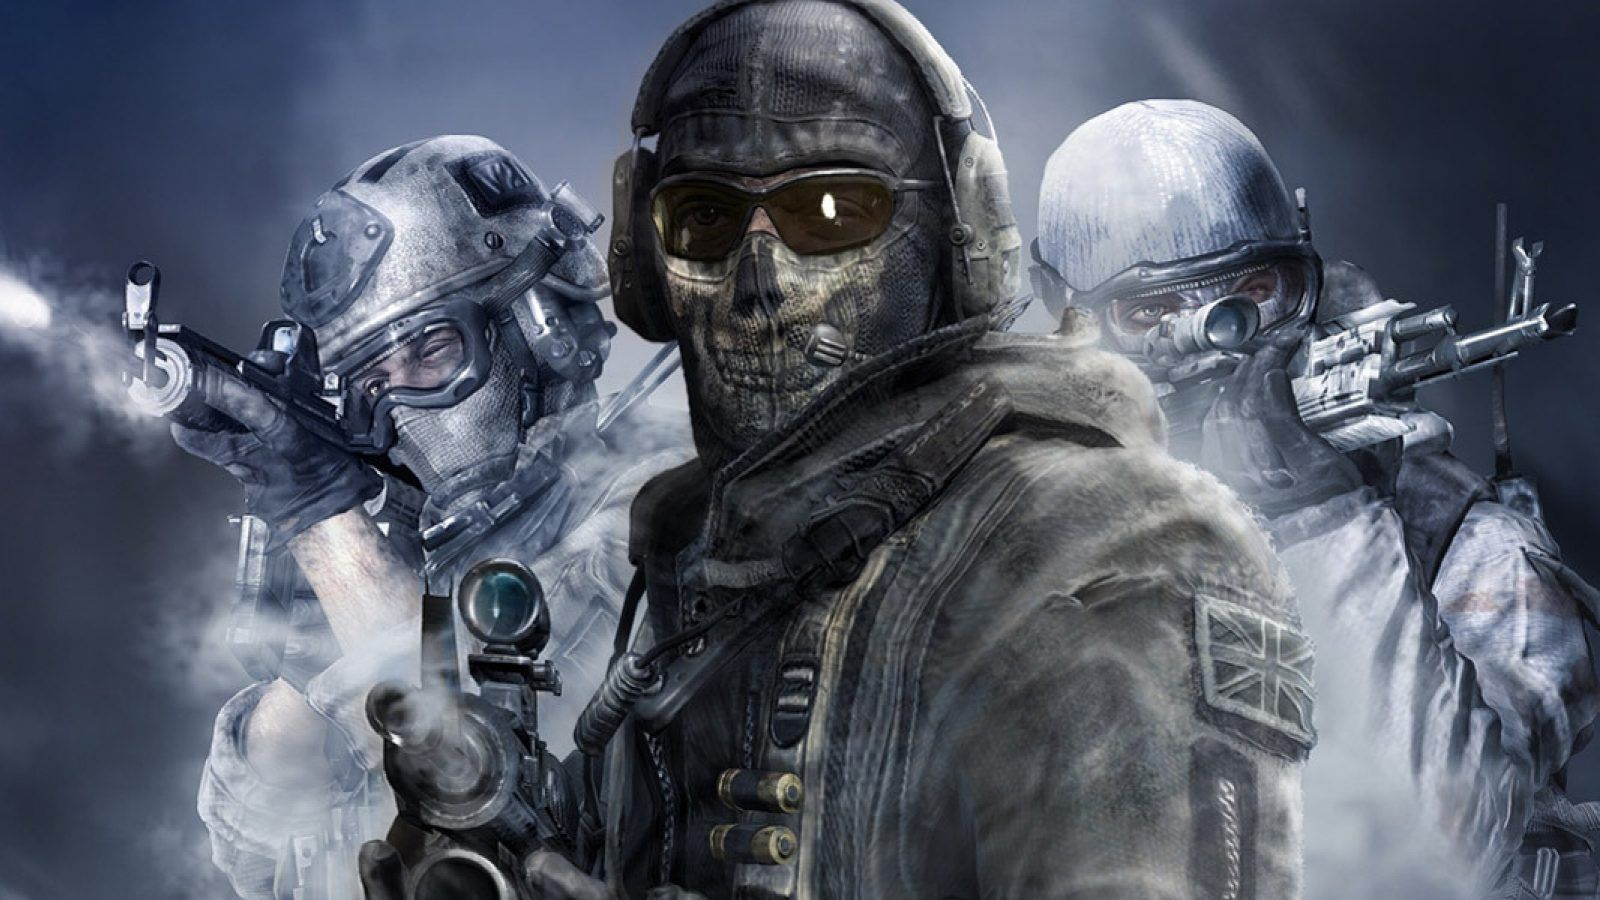 How To Get Free Cod Mobile Points In 2020 Call Of Duty Cod Ghost Ghost Wallpaper